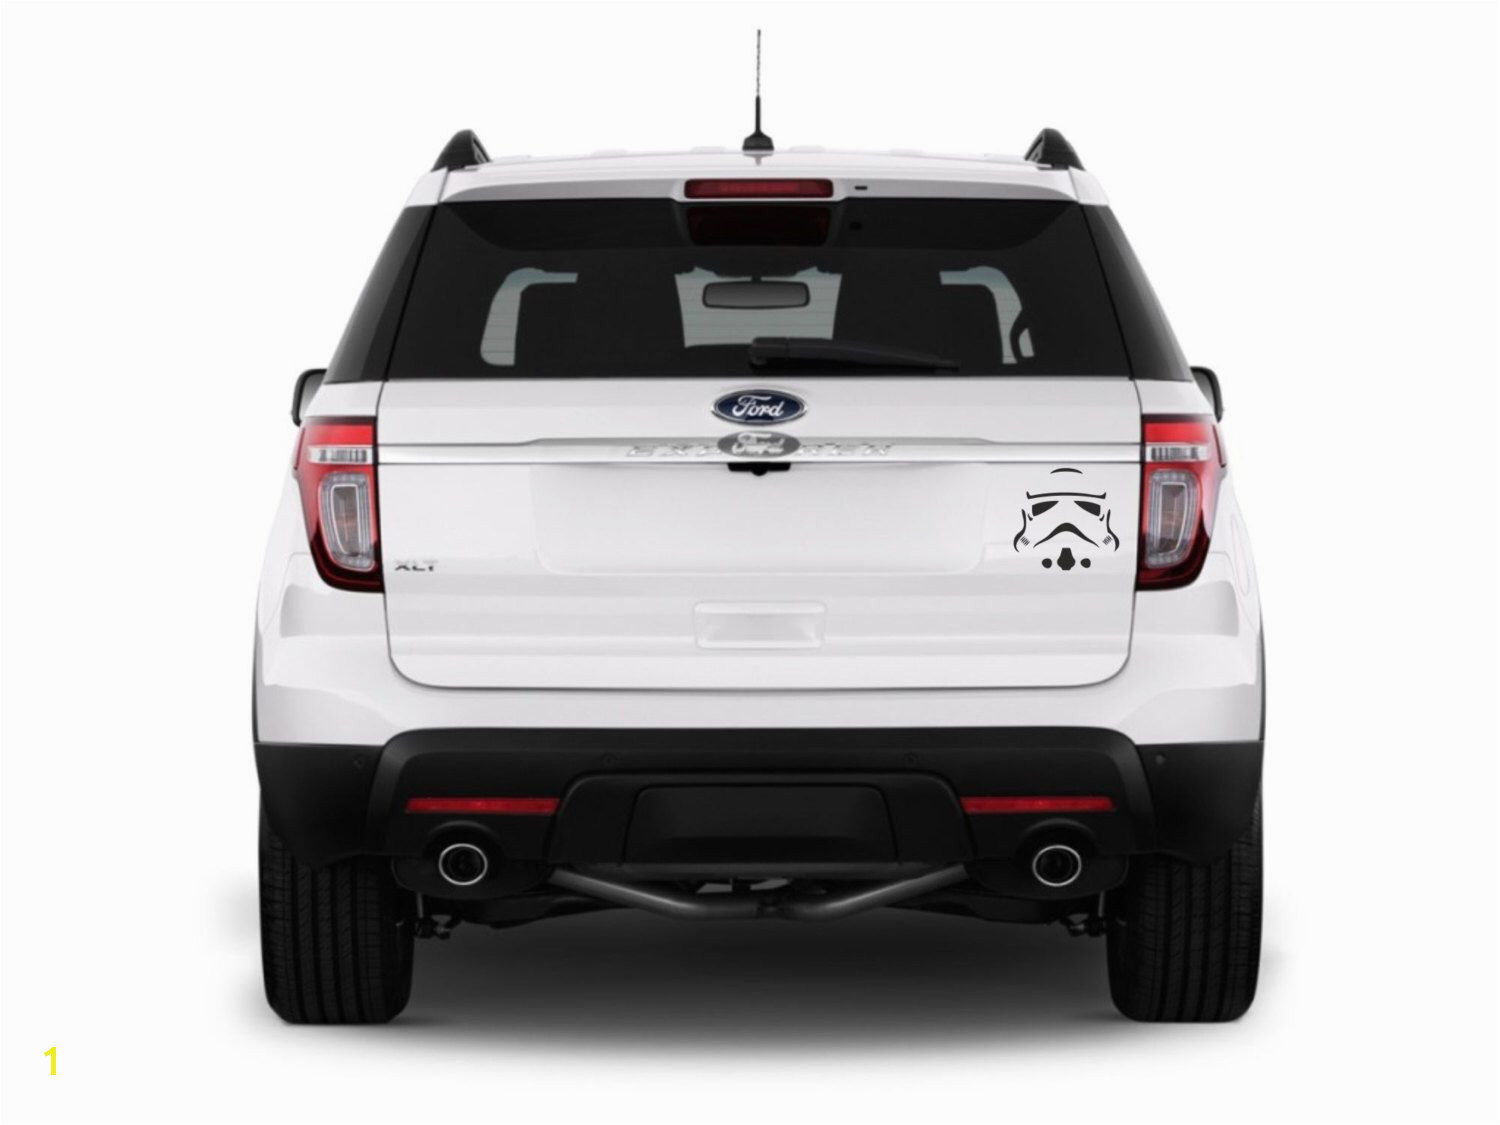 Sci fi art inspired by Star Wars Stroemtrooper vinyl car decals rear window decals